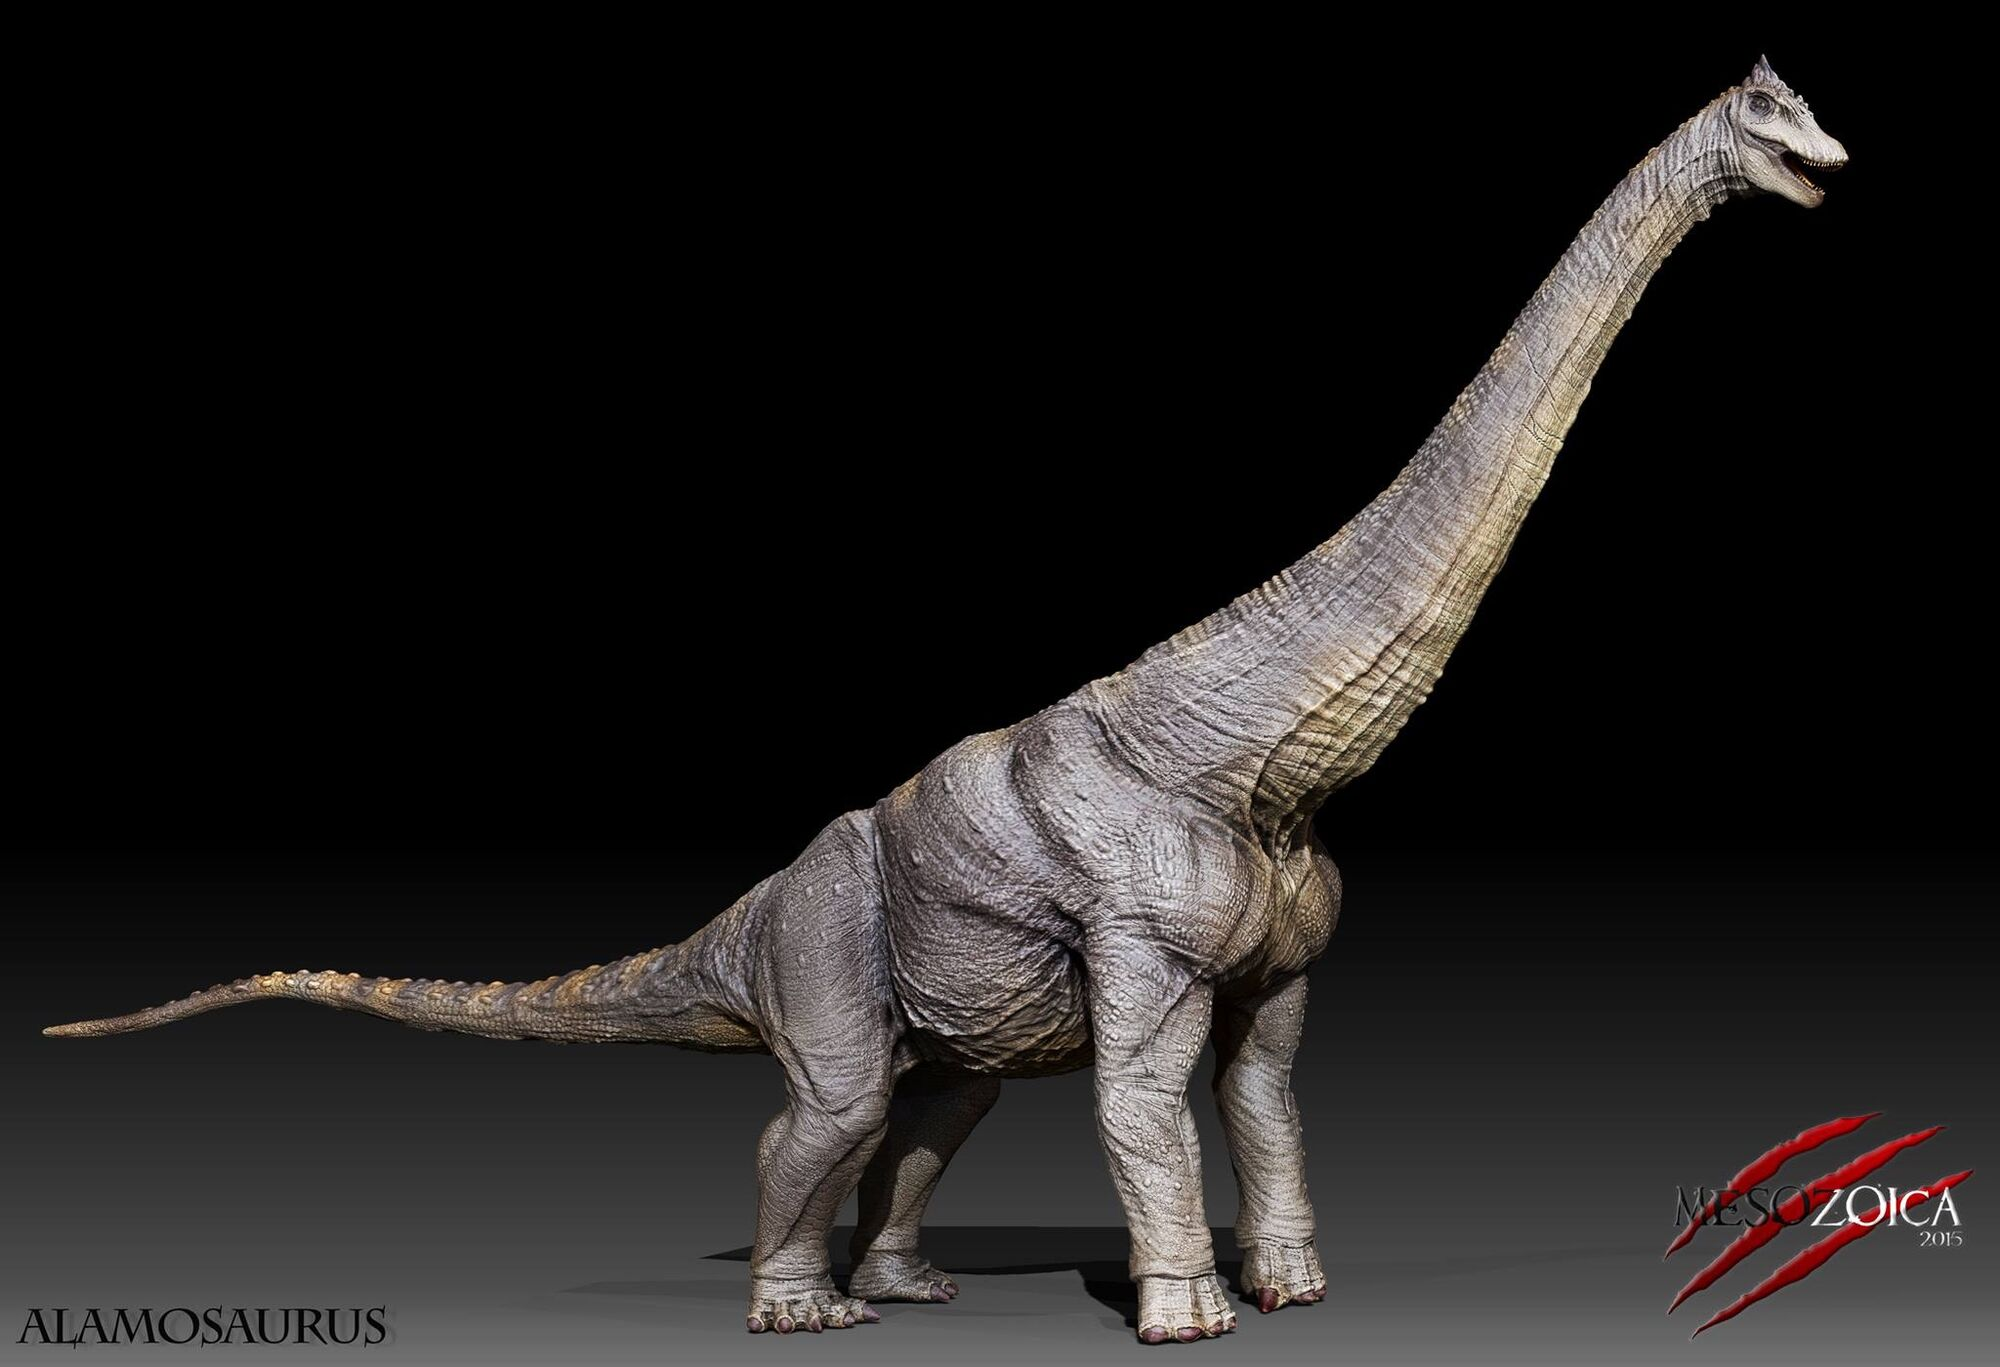 Alamosaurus | Mesozoica game Wikia | FANDOM powered by Wikia